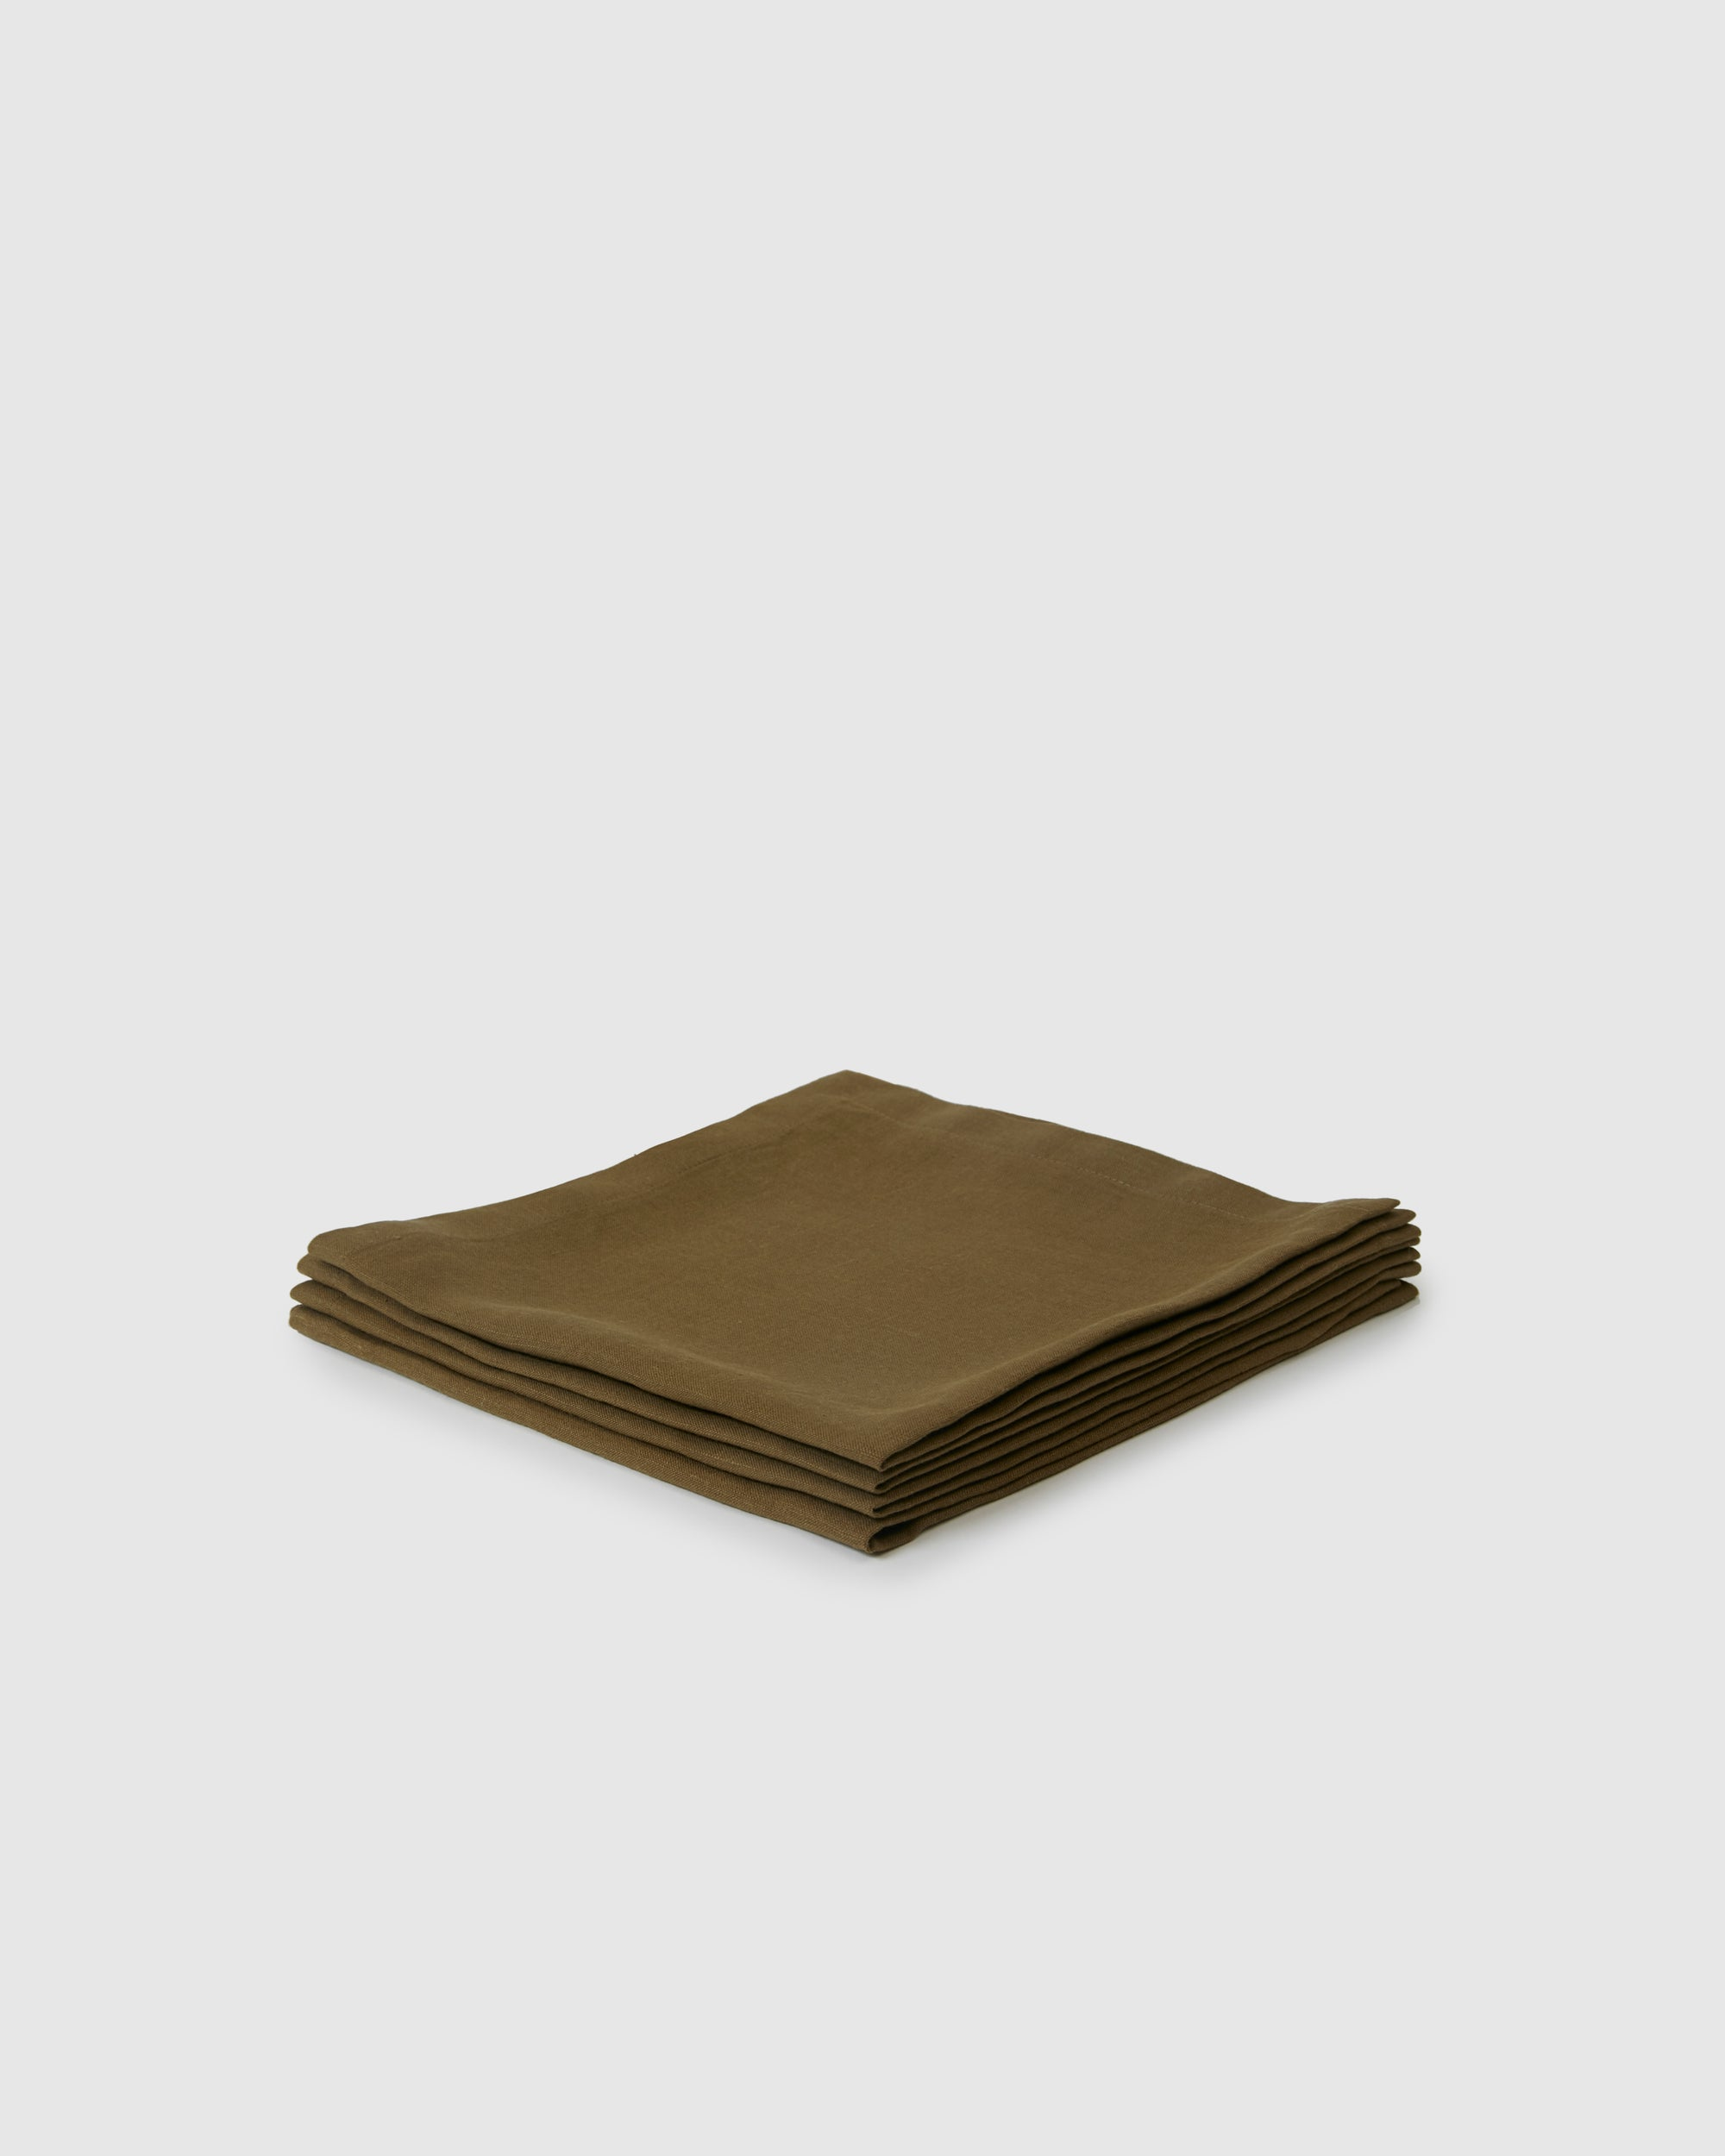 Berkeley Linen Table Napkins  (Set of 4) - Moss